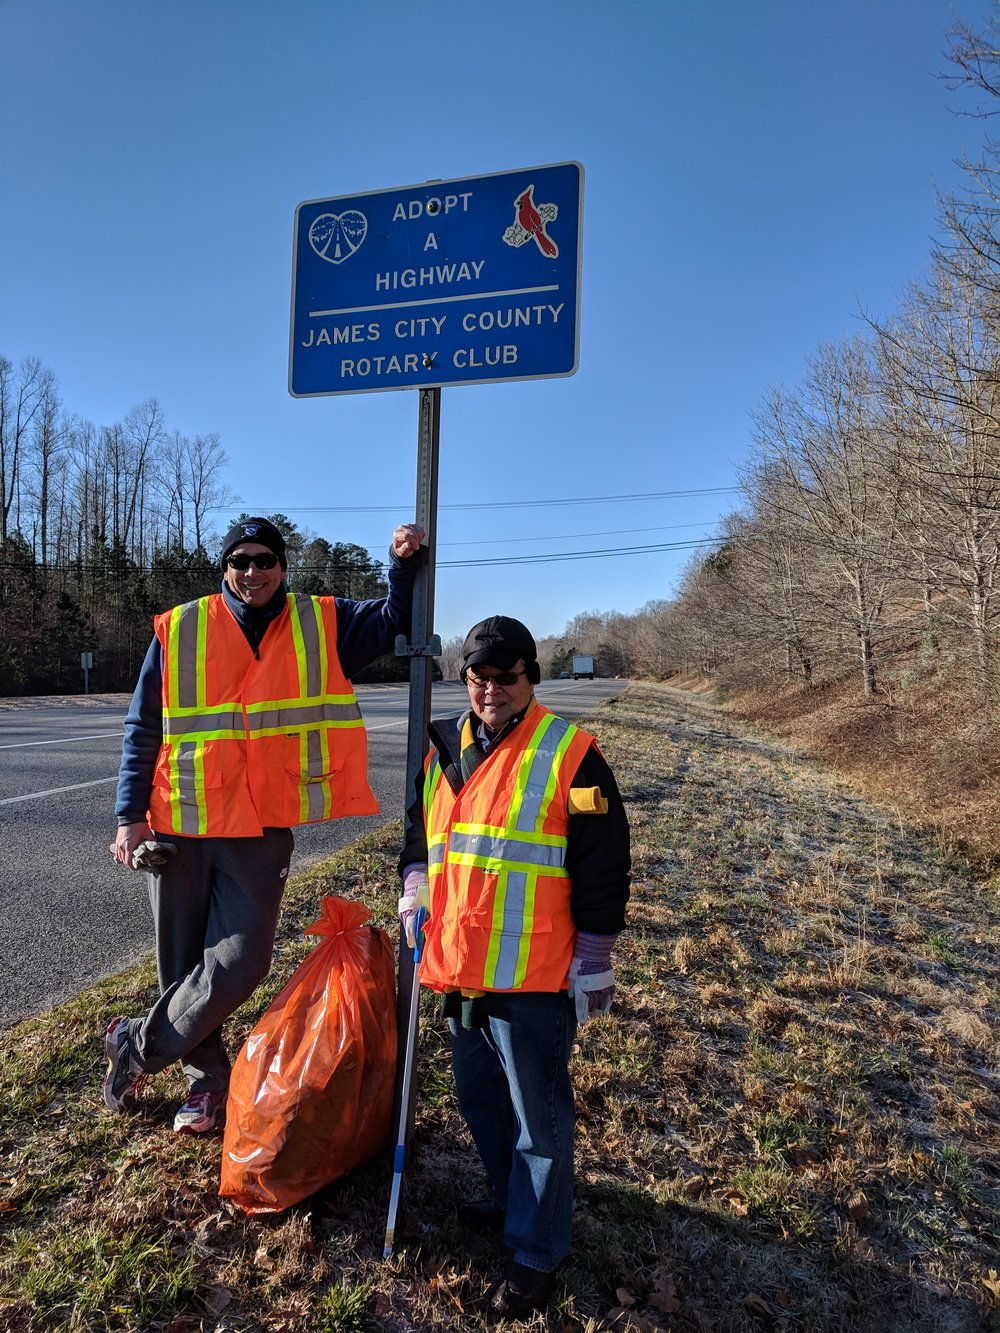 Community service - Our President Bill and Paul supporting our Highway Cleanup project on a chilly day!